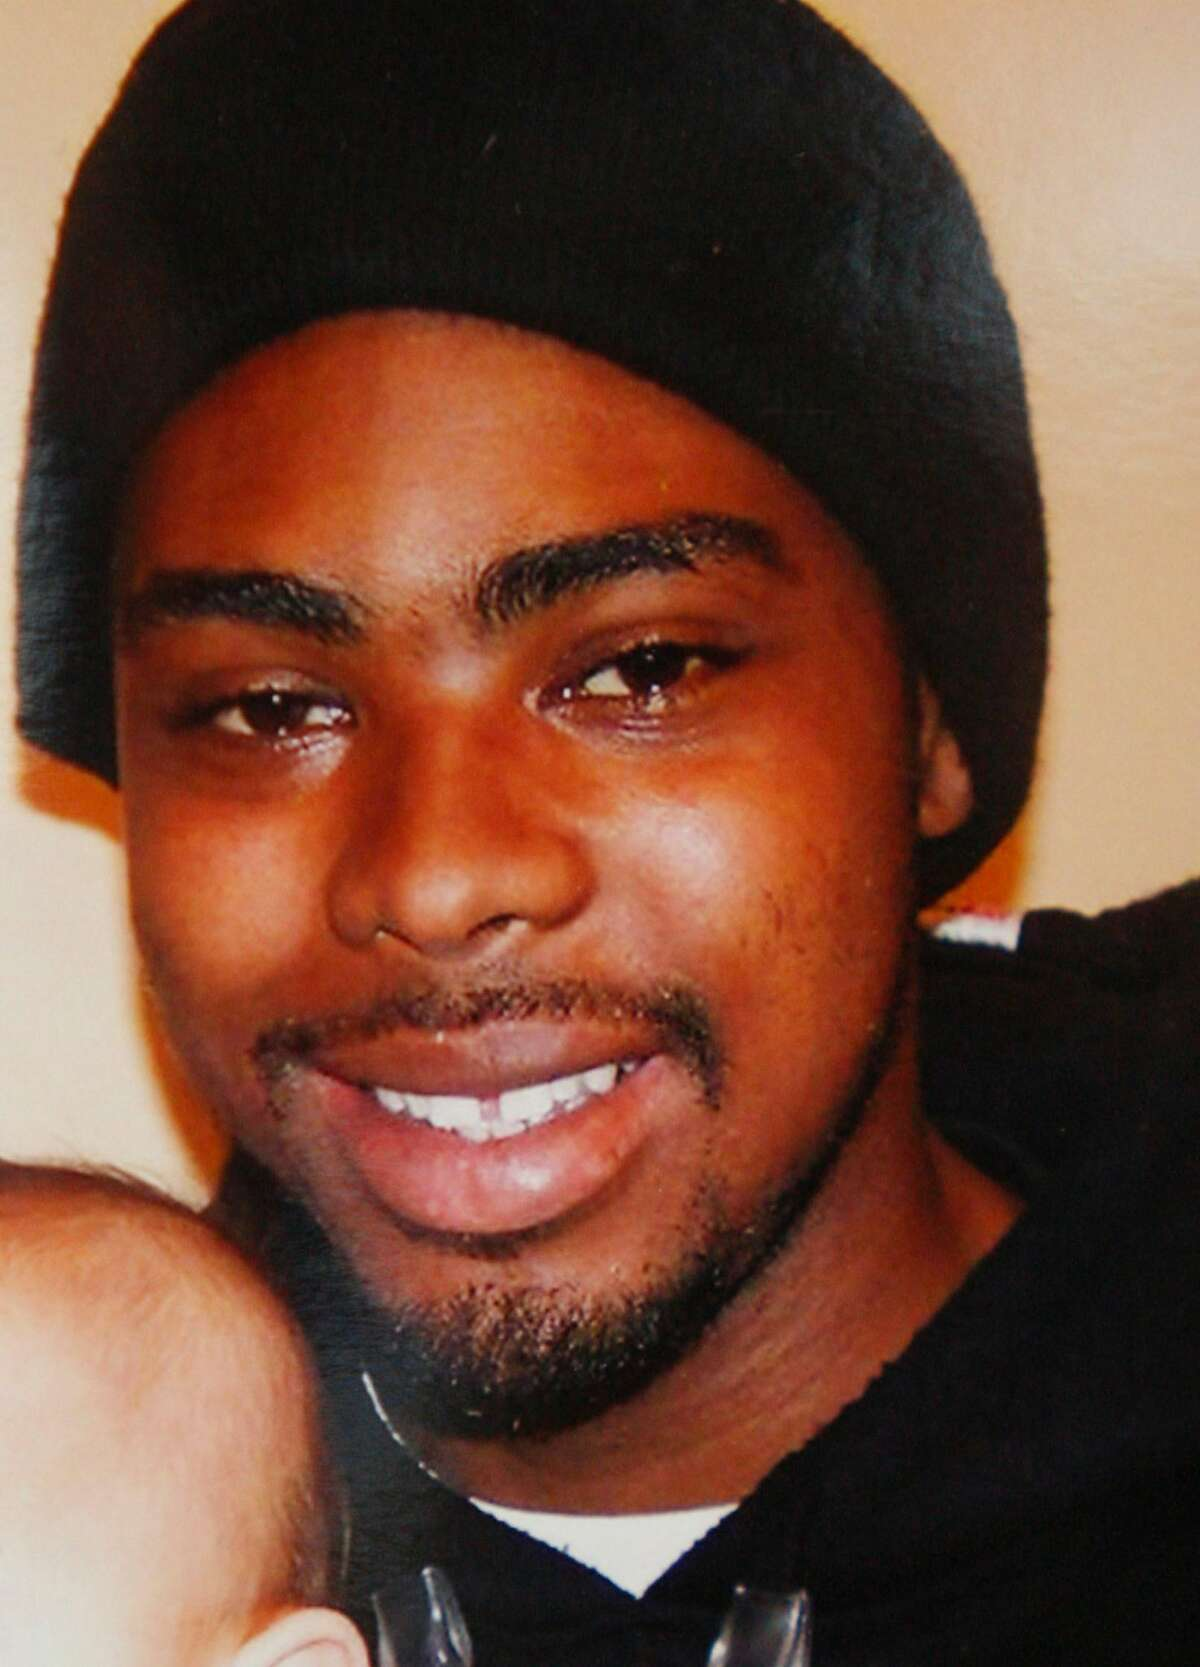 A copy of a portrait of Oscar Grant taken last month was on display as attorney John Burris, representing the family of Oscar Grant, slain by a BART police officer New Year's Day, held a press conference near his office in Oakland, Calif. on January 4, 2009.